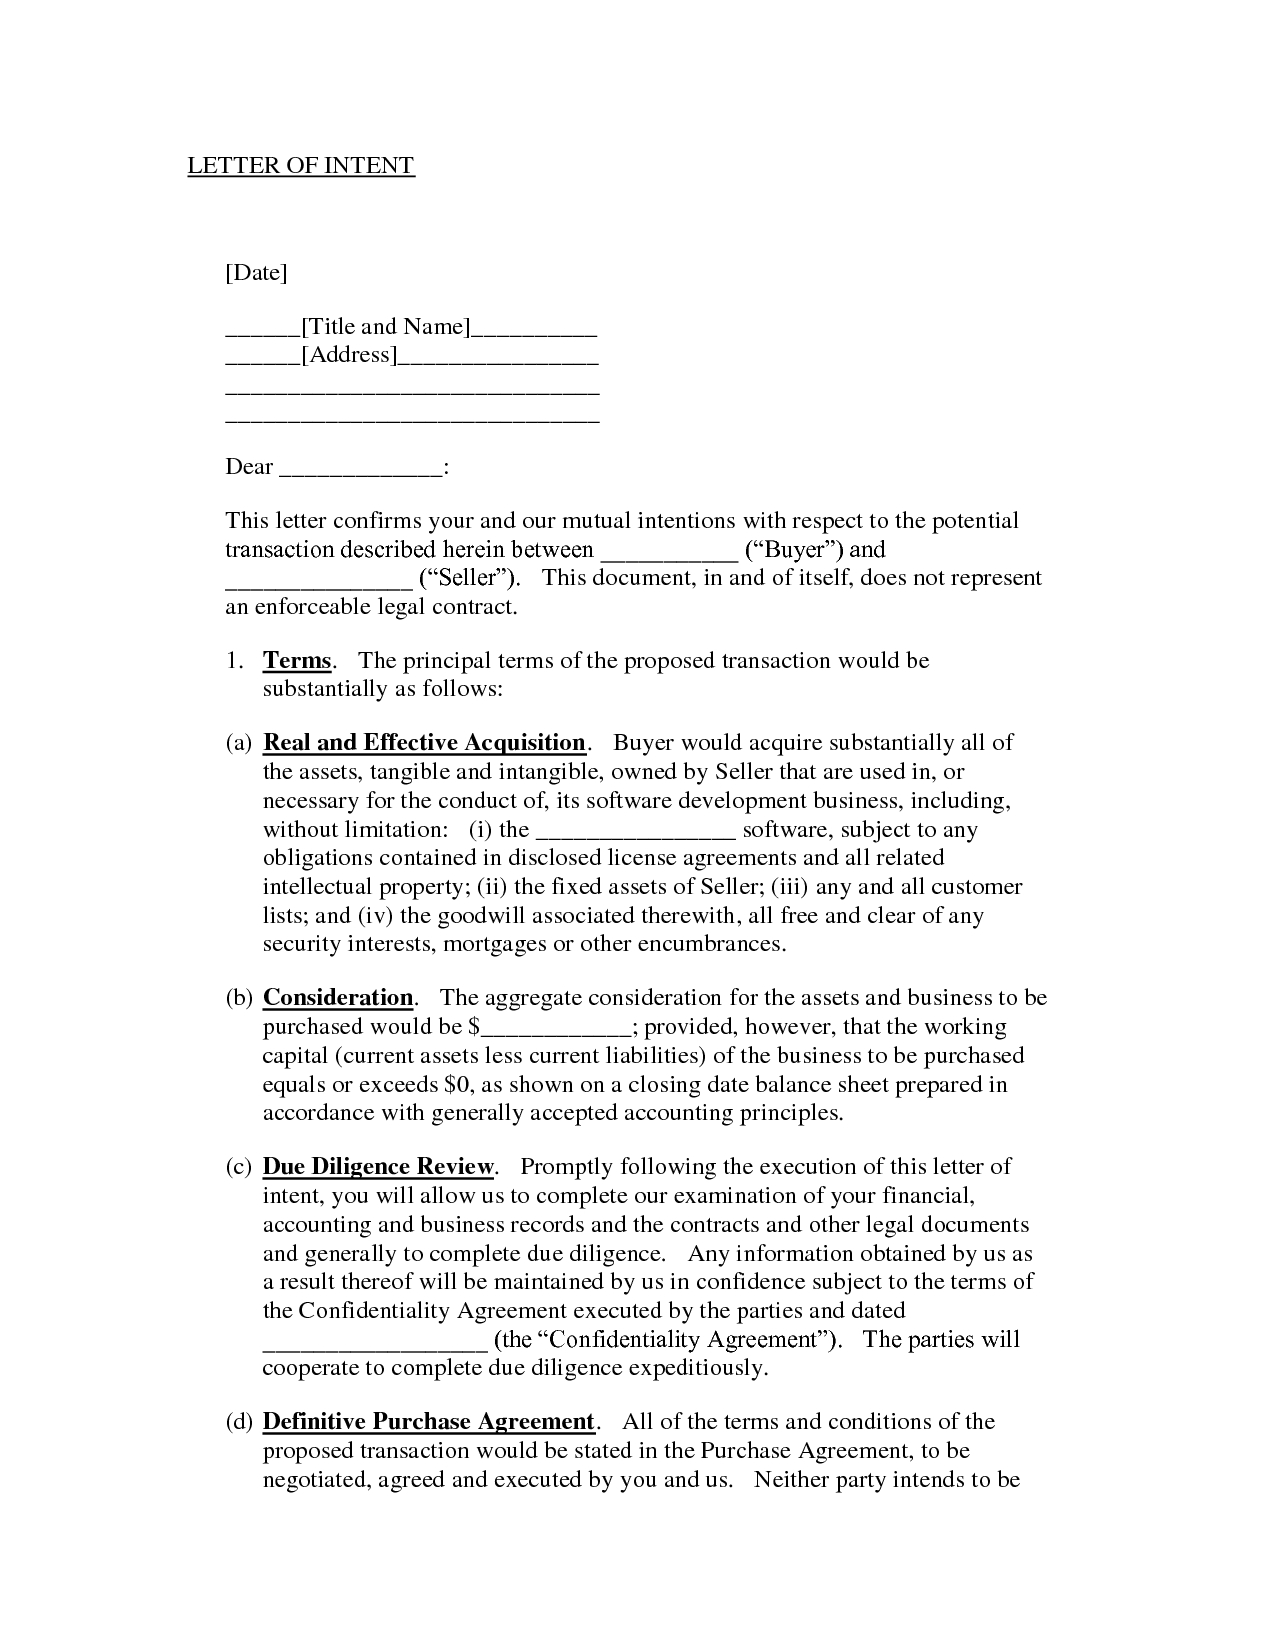 Letter Of Intent to Purchase Shares Template - Letter Tent Stock Purchase to Mon Sample Agreement Intent